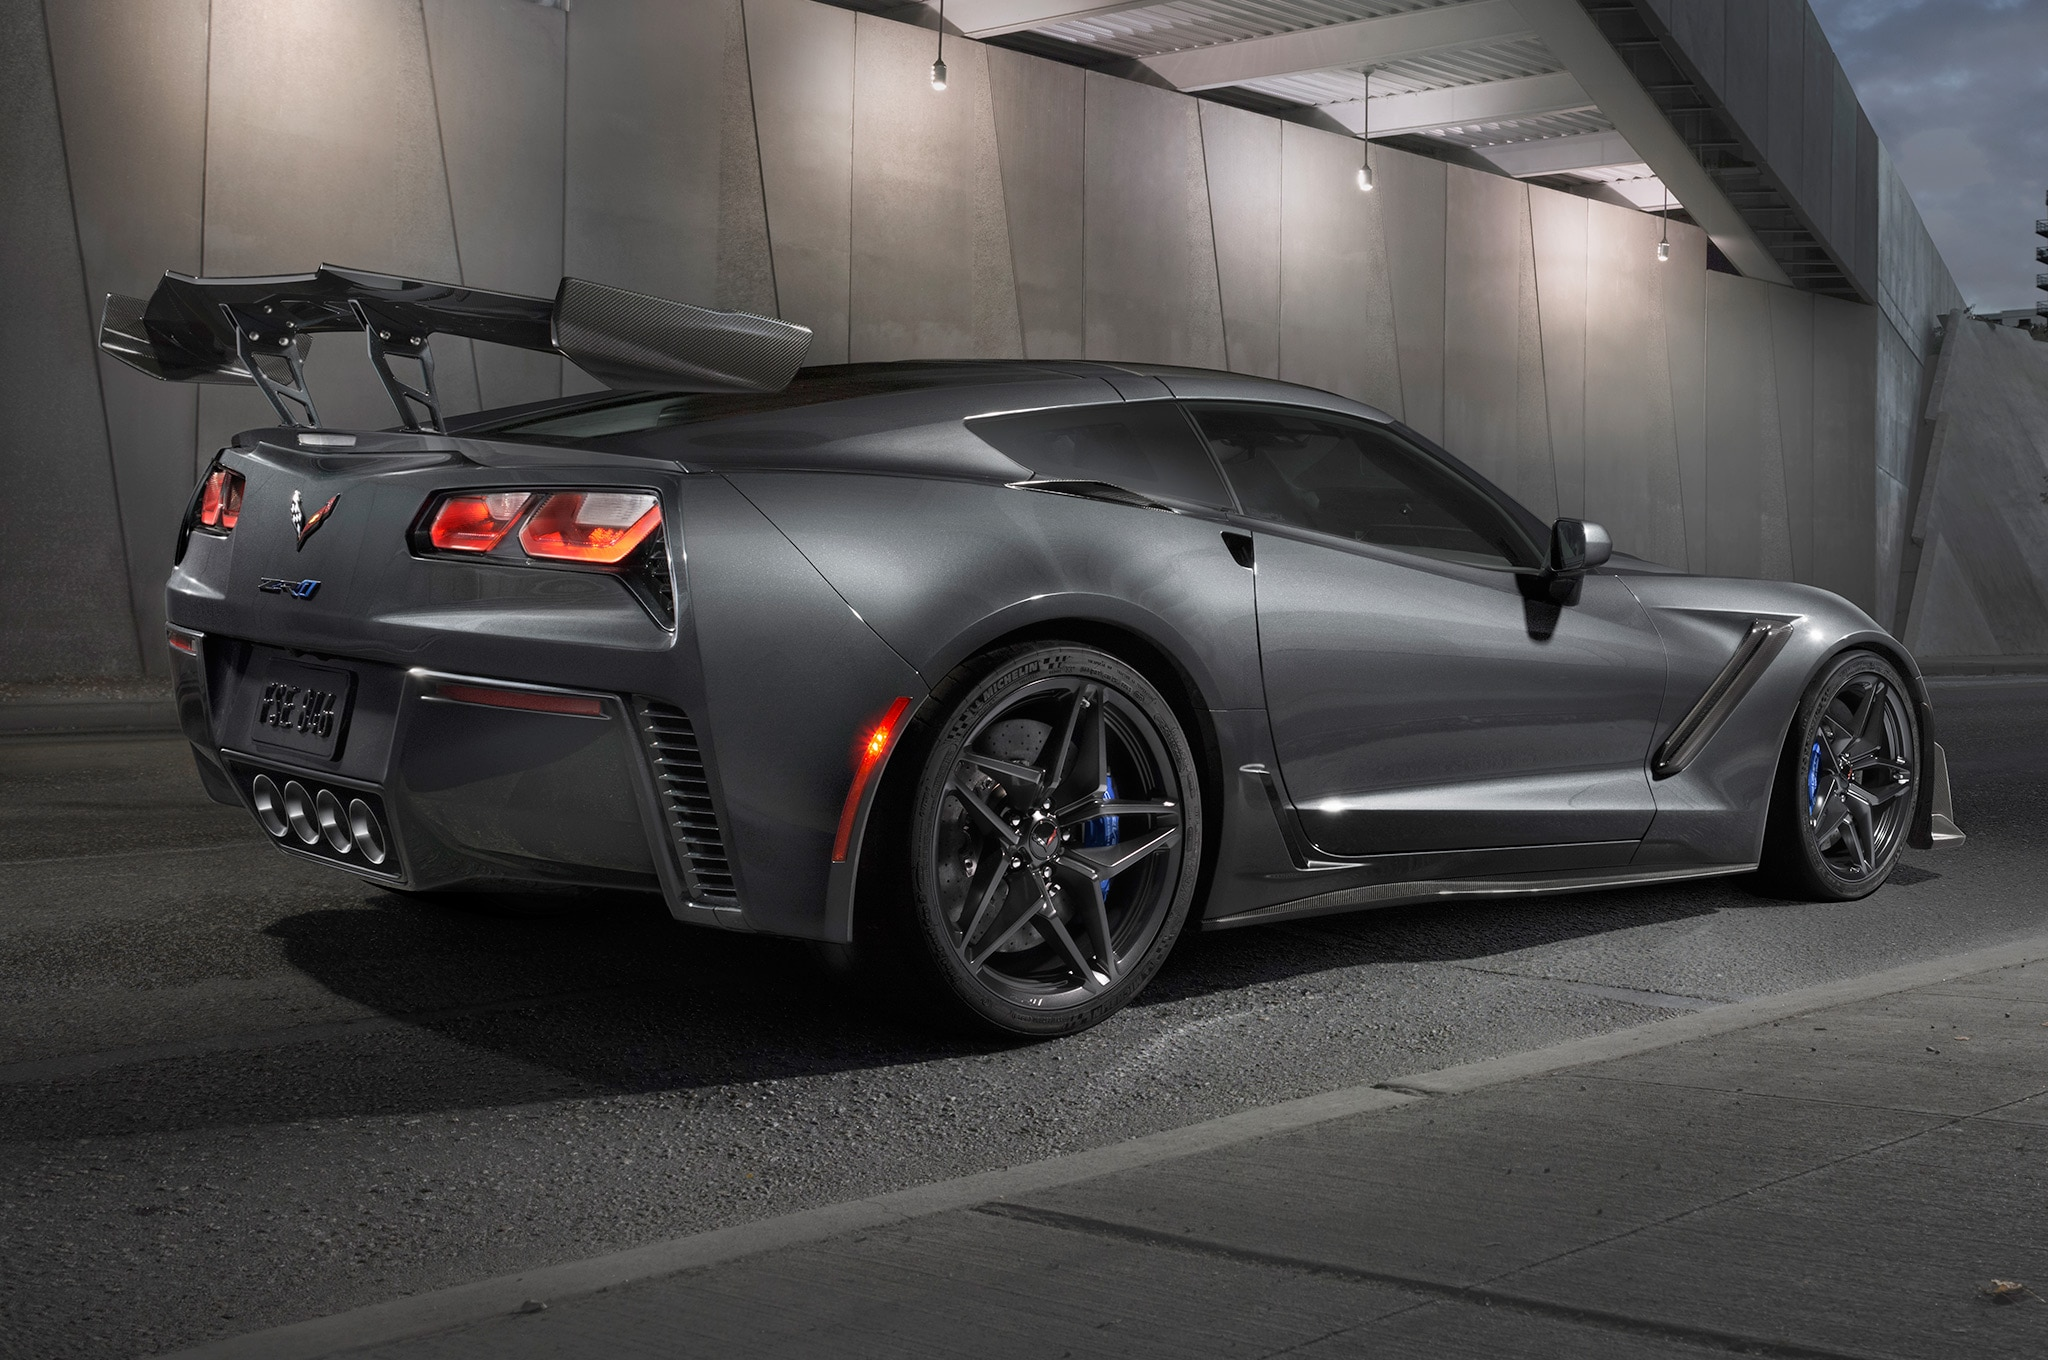 2019 Chevrolet Corvette ZR1 Rear Three Quarter High Wing